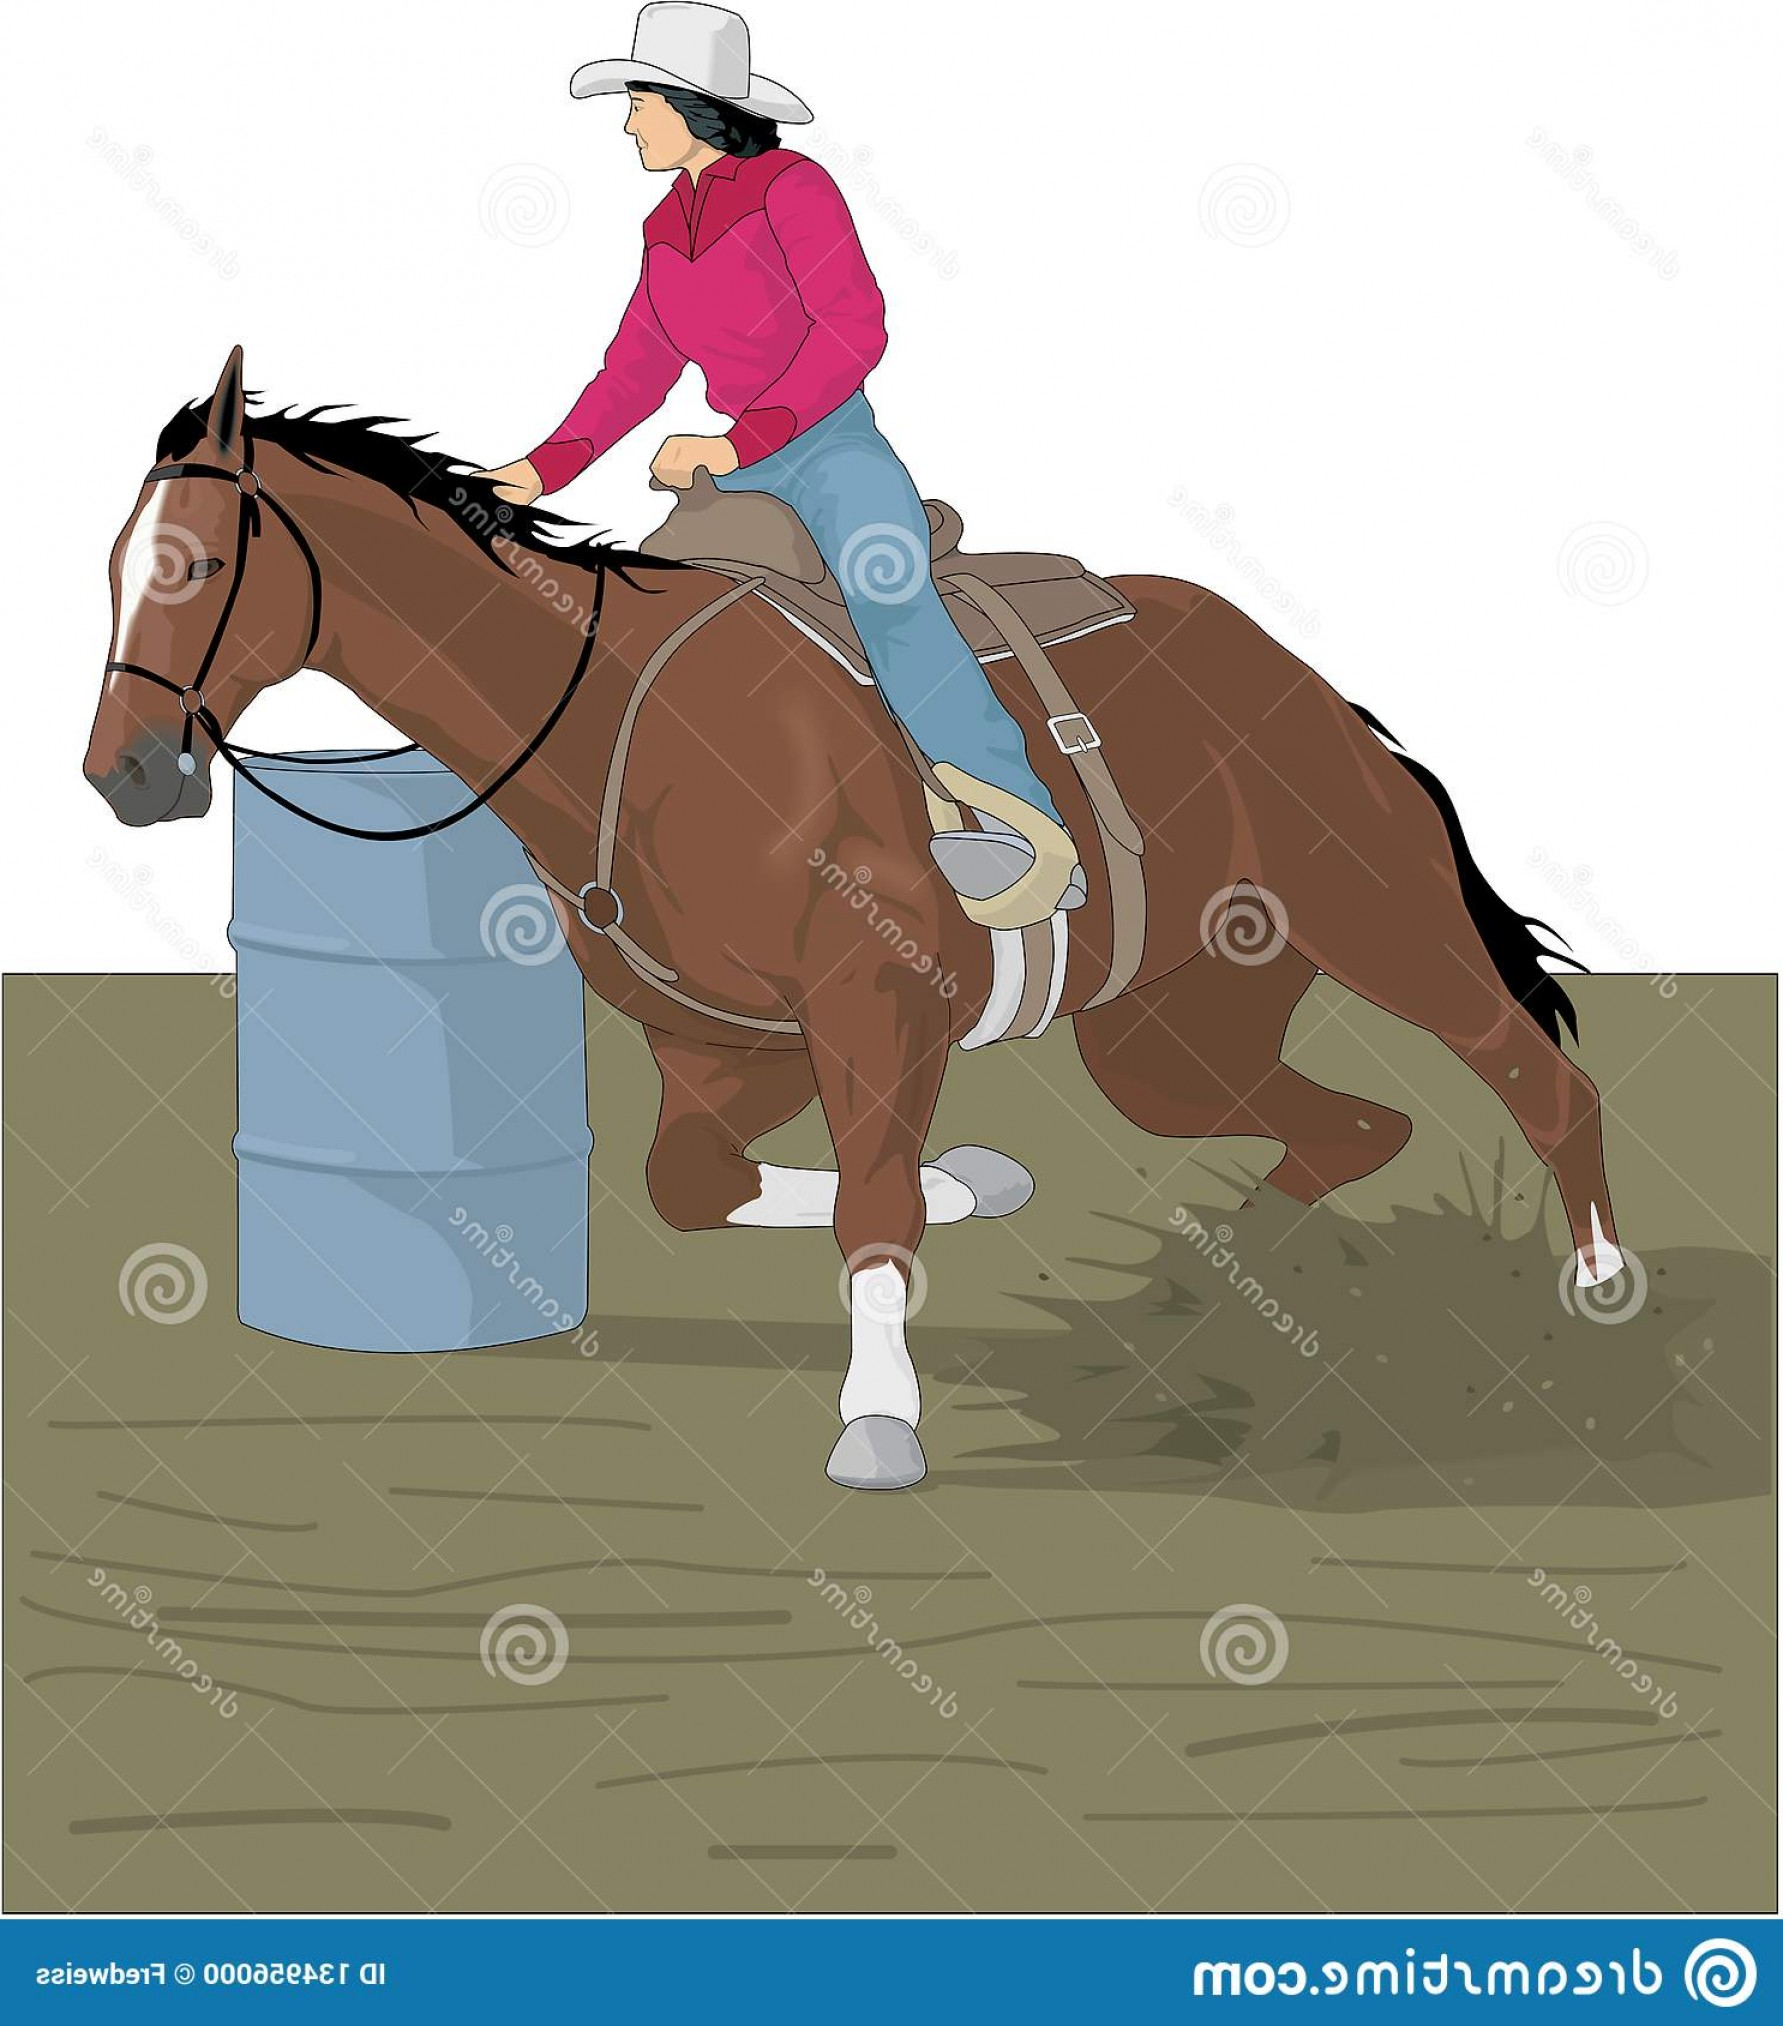 Barrel Racer Vector: Vector Illustration Horse Rider Barrel Race Rodeo Barrel Racing Vector Illustration Image